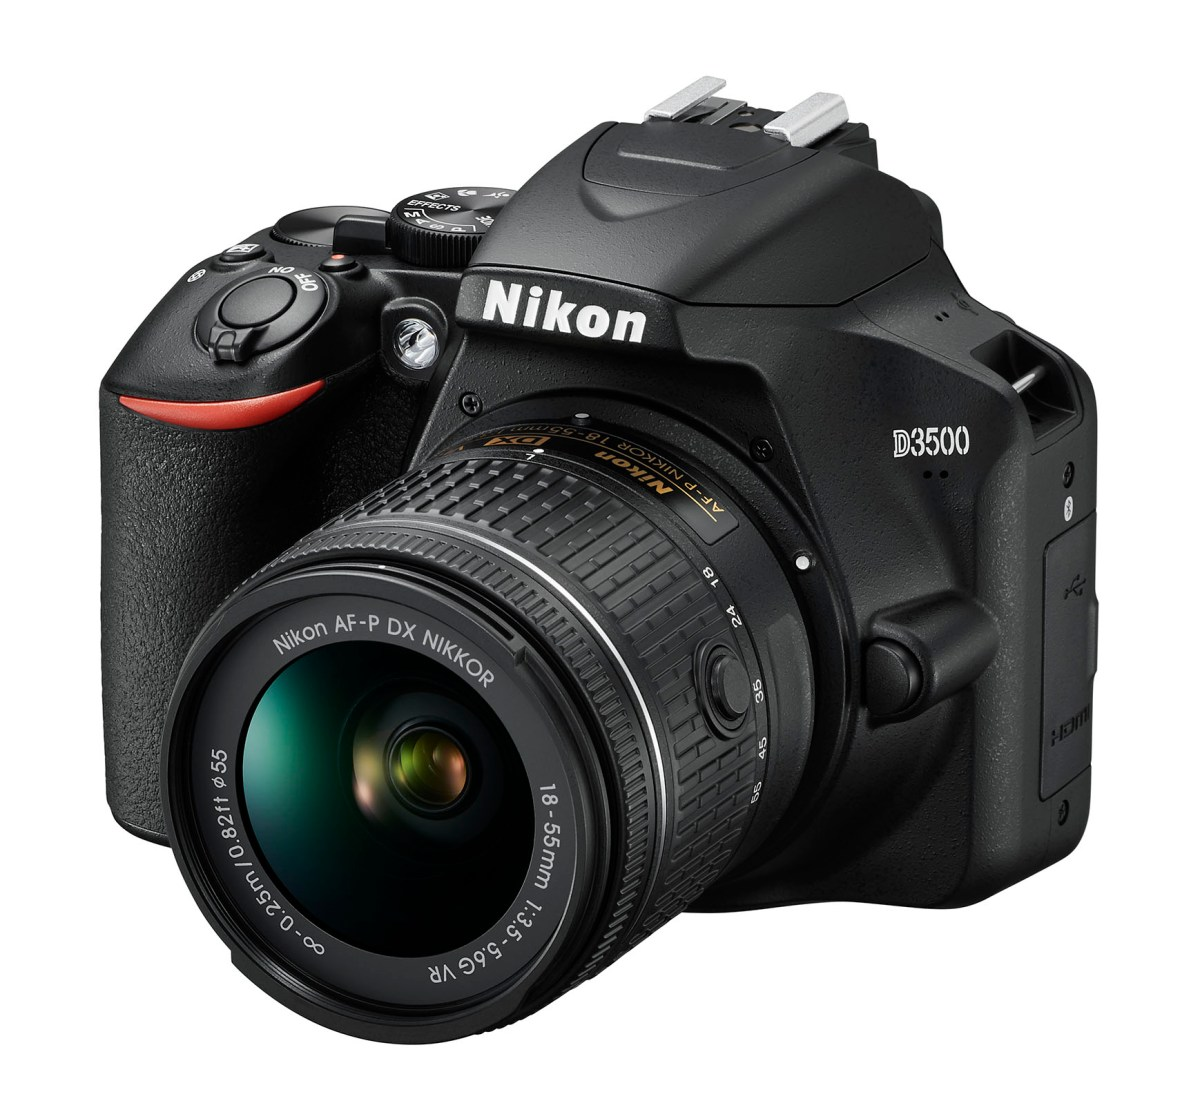 The Redesigned Nikon D3500 is the Most Portable Entry-Level Nikon DSLR